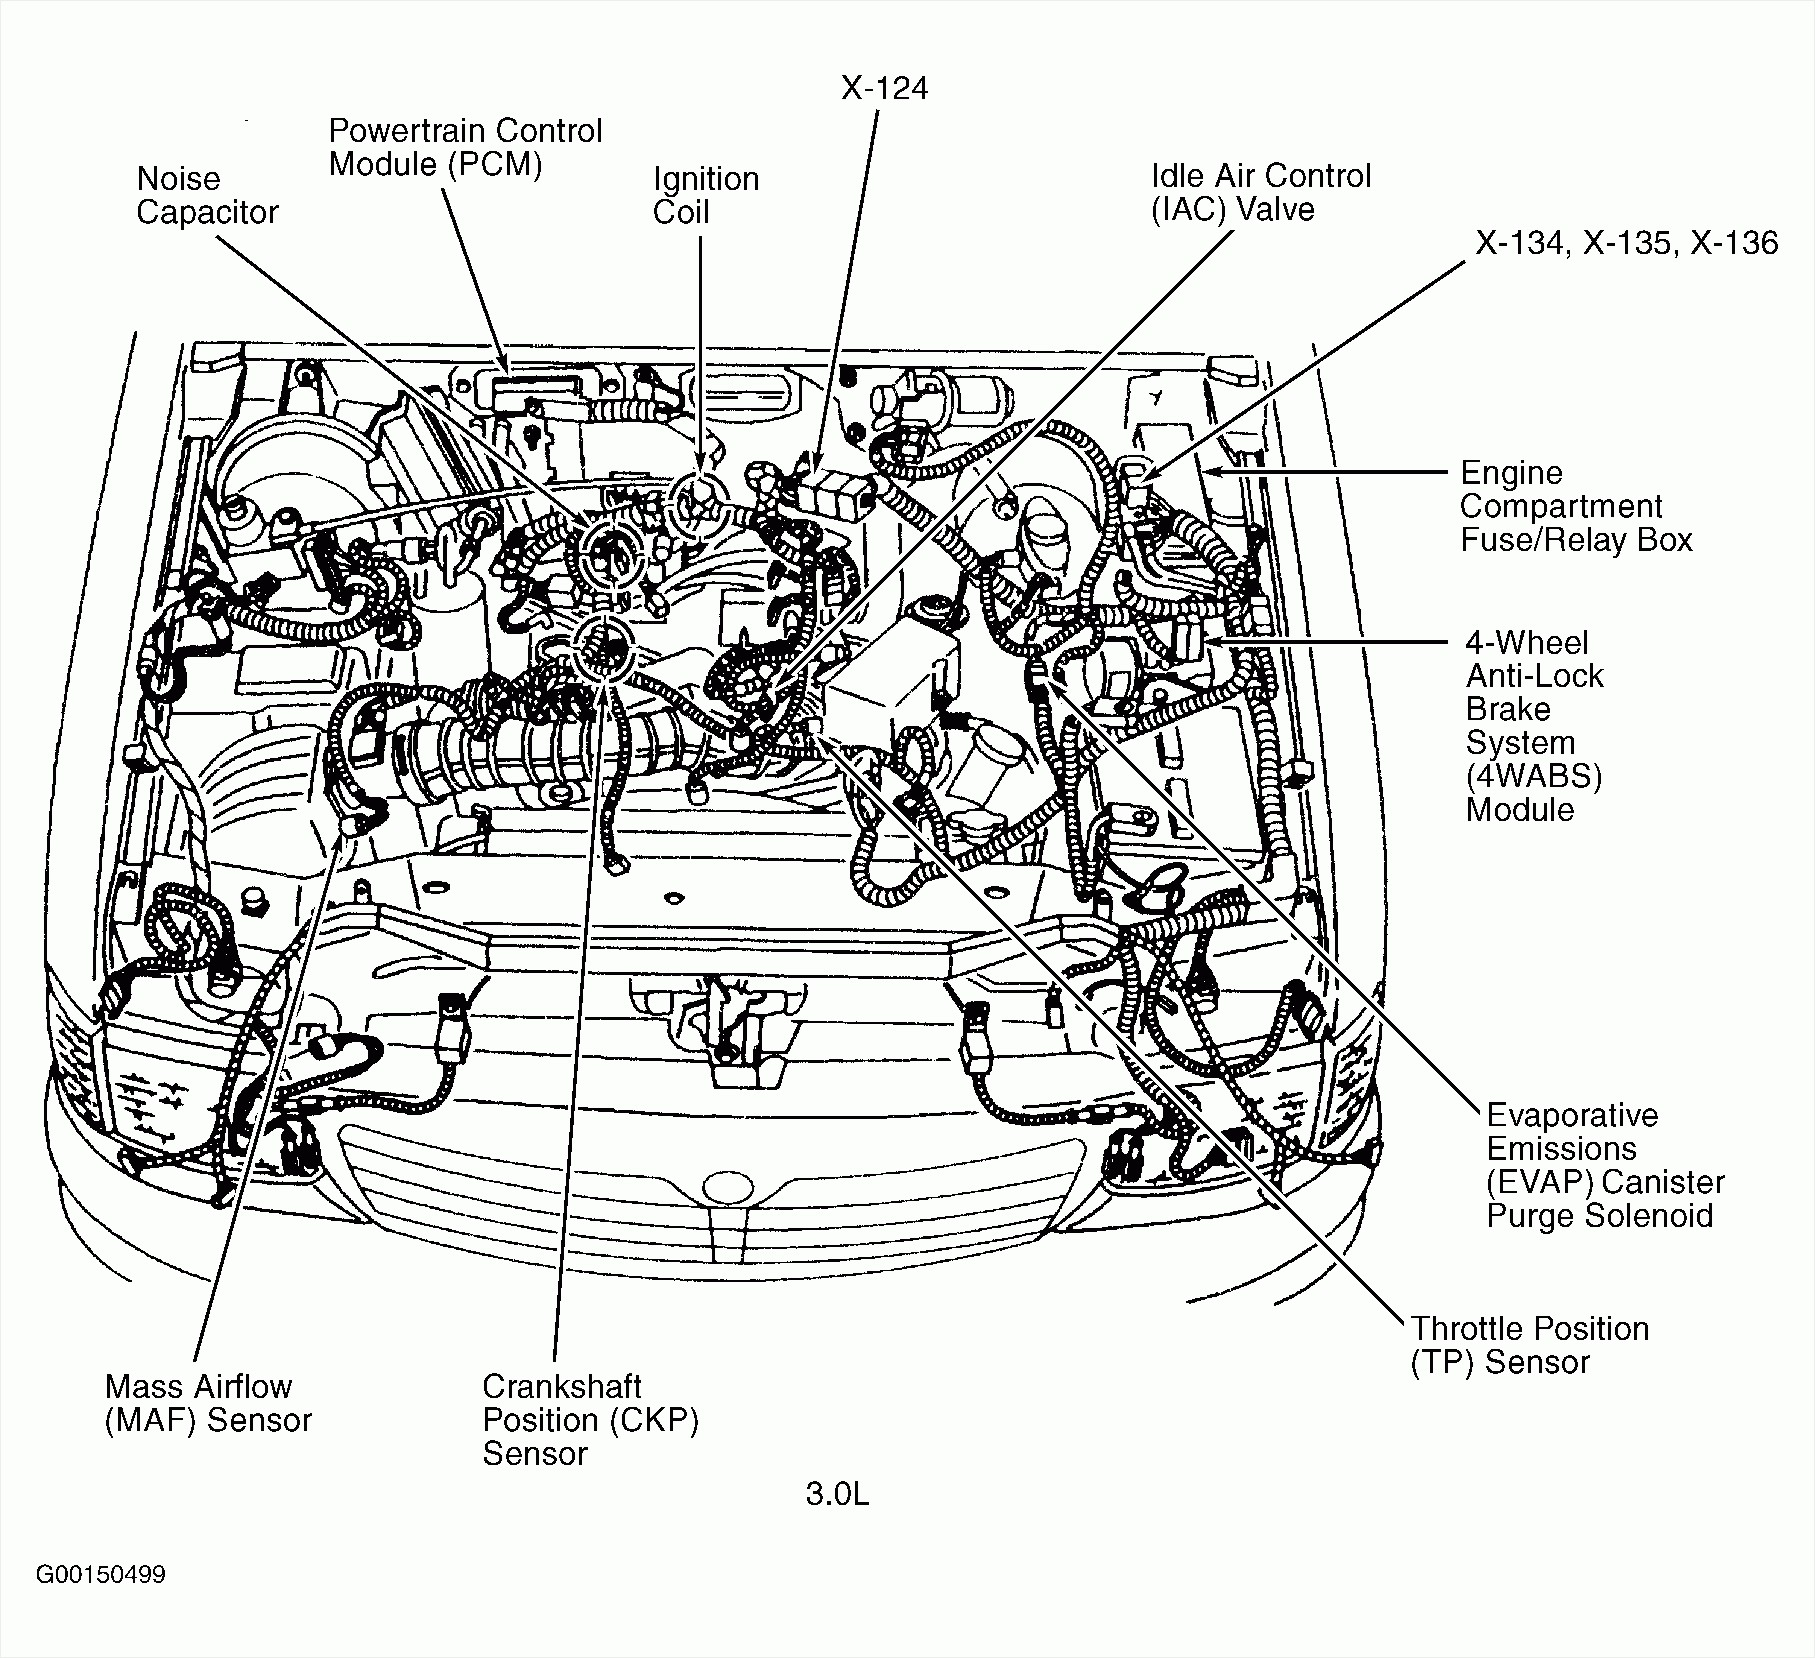 hight resolution of 99 vw jetta engine diagram wiring diagram image 1999 vw jetta vr6 engine diagram 1999 jetta engine diagram